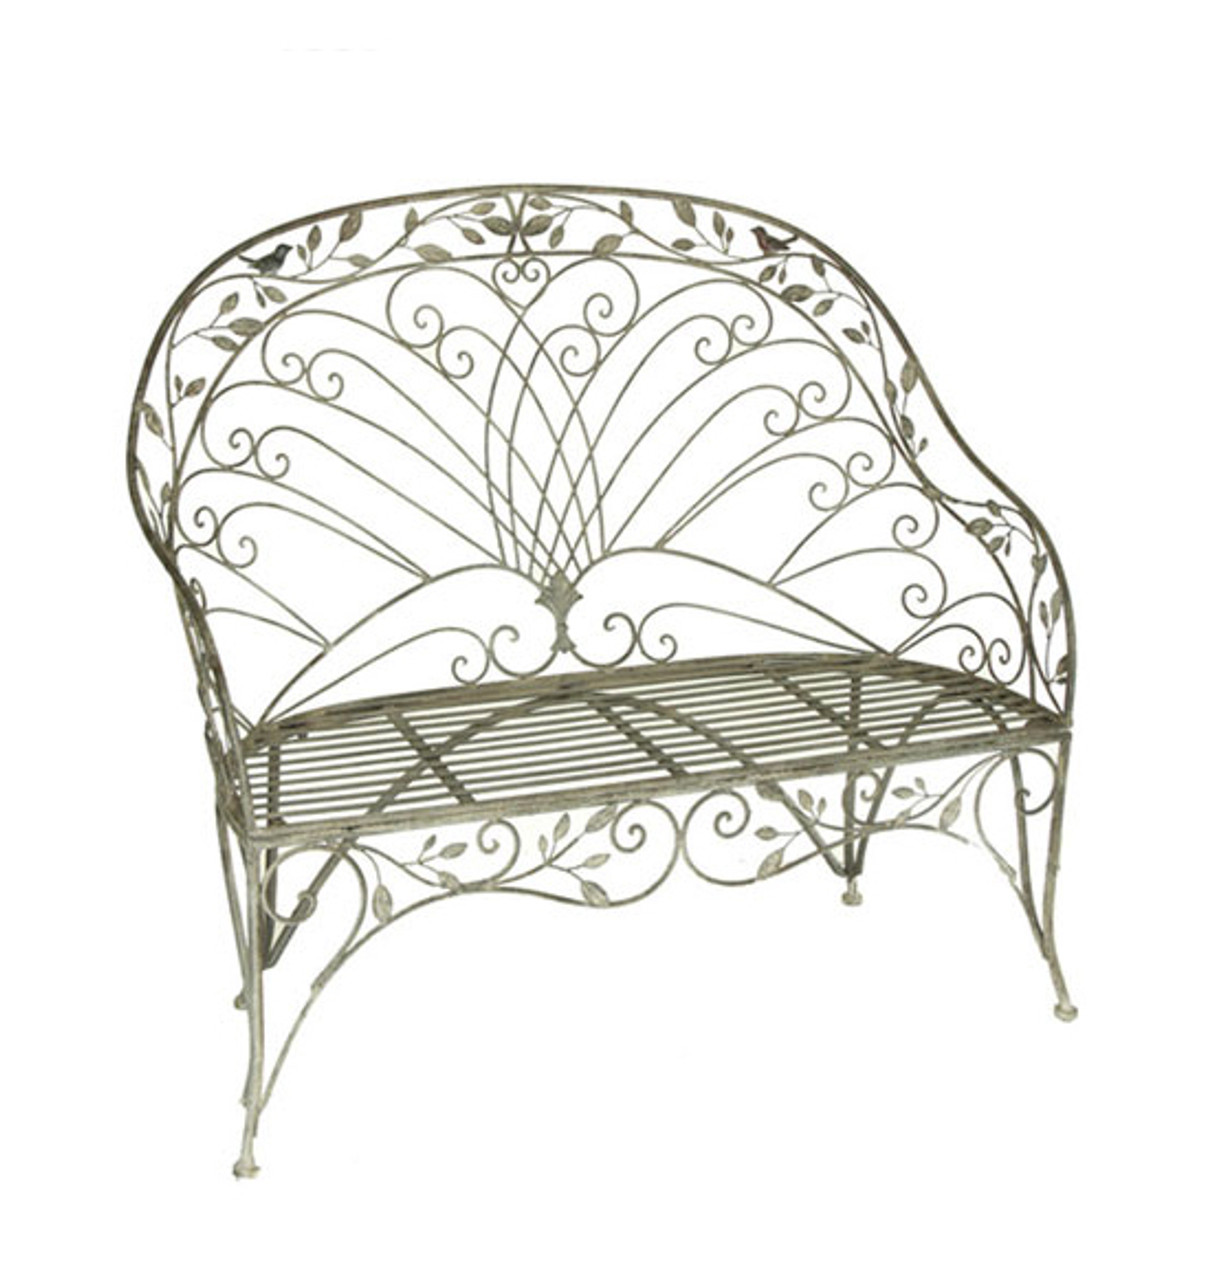 Surprising 48 Metal Garden Vineyard Weathered Finish Outdoor Patio Loveseat Bench 31352525 Gmtry Best Dining Table And Chair Ideas Images Gmtryco